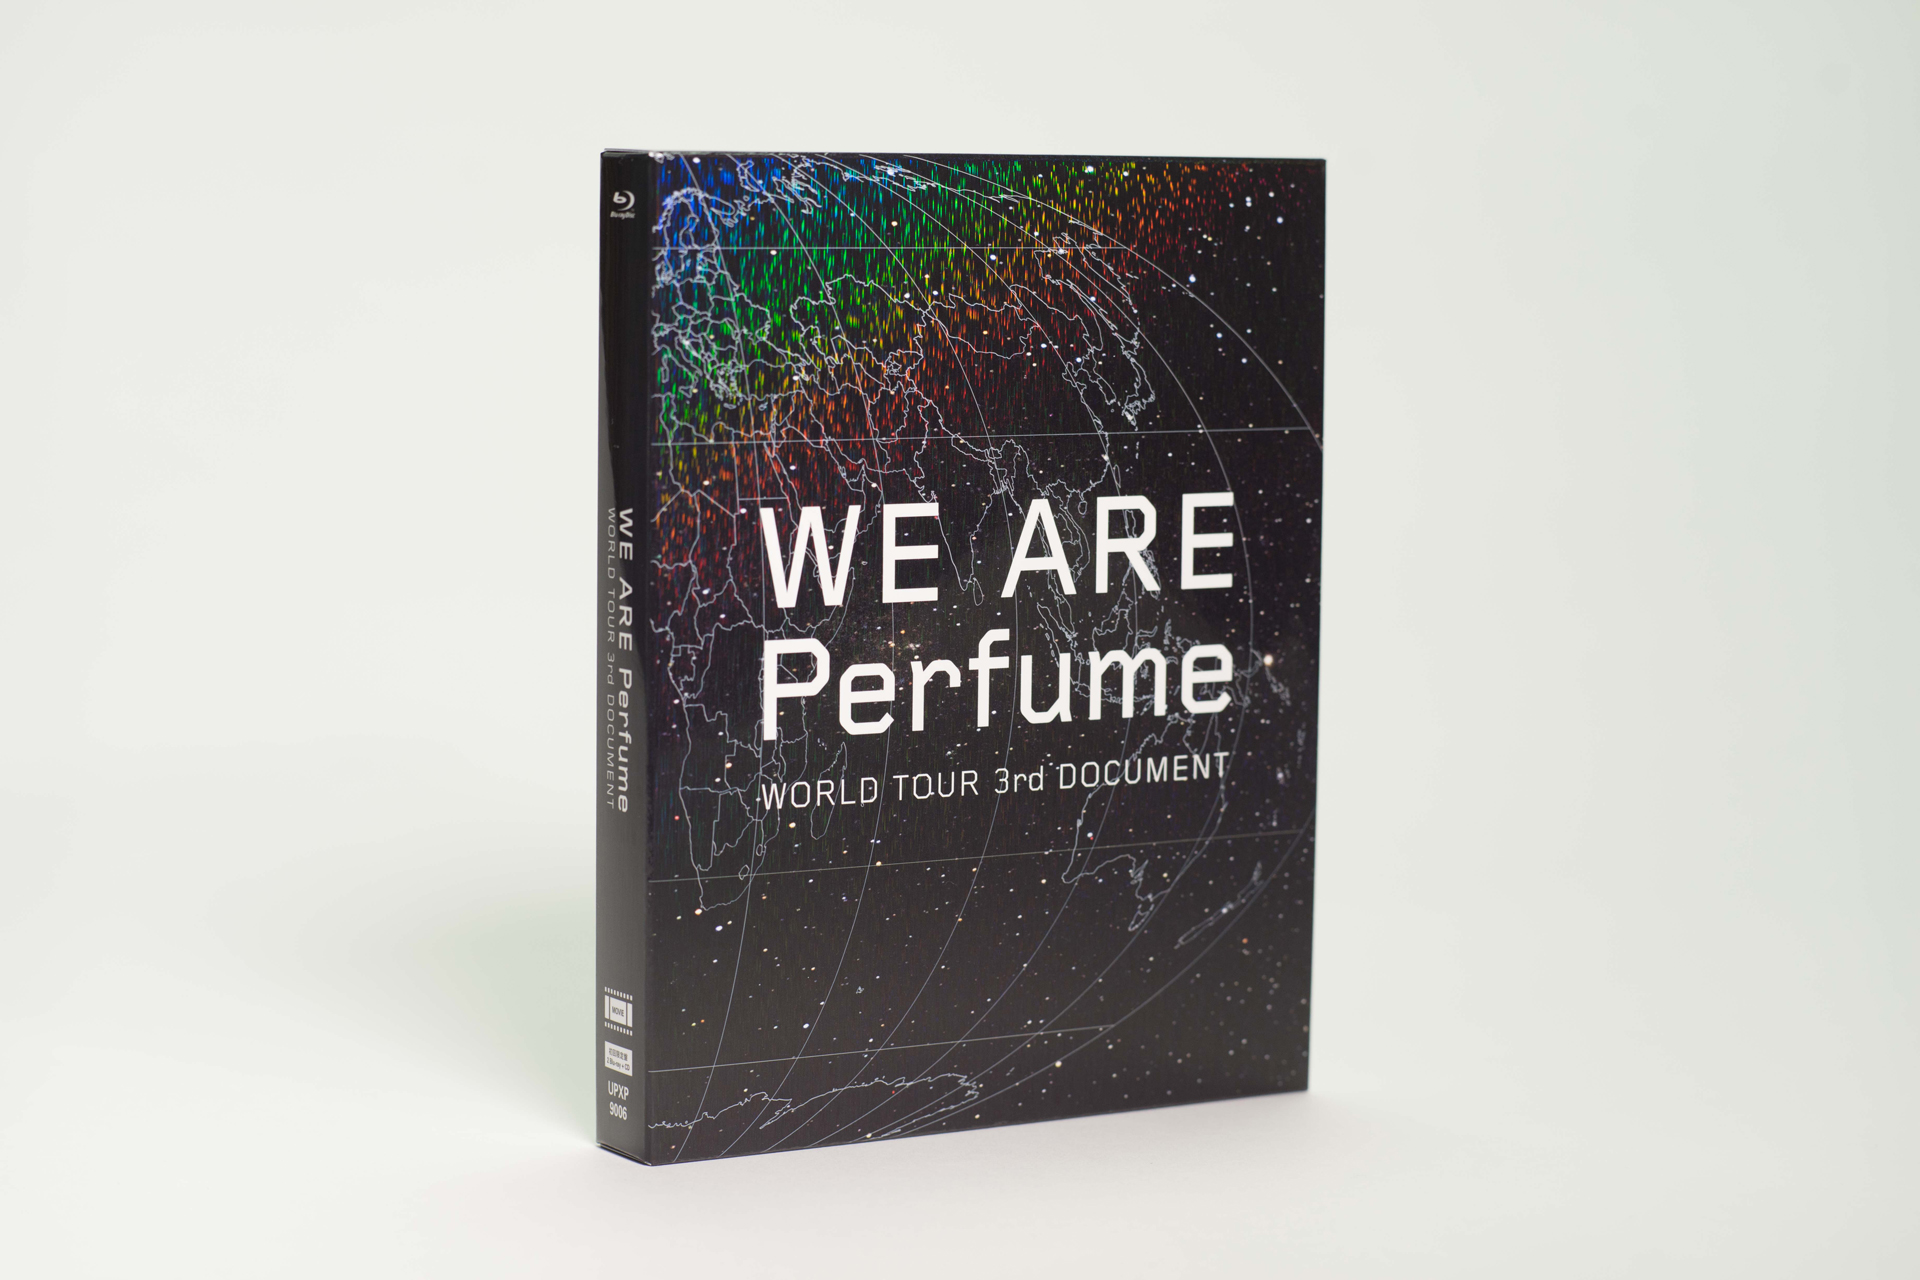 WE ARE Perfume -WORLD TOUR 3rd DOCUMENT Blu-ray,DVD